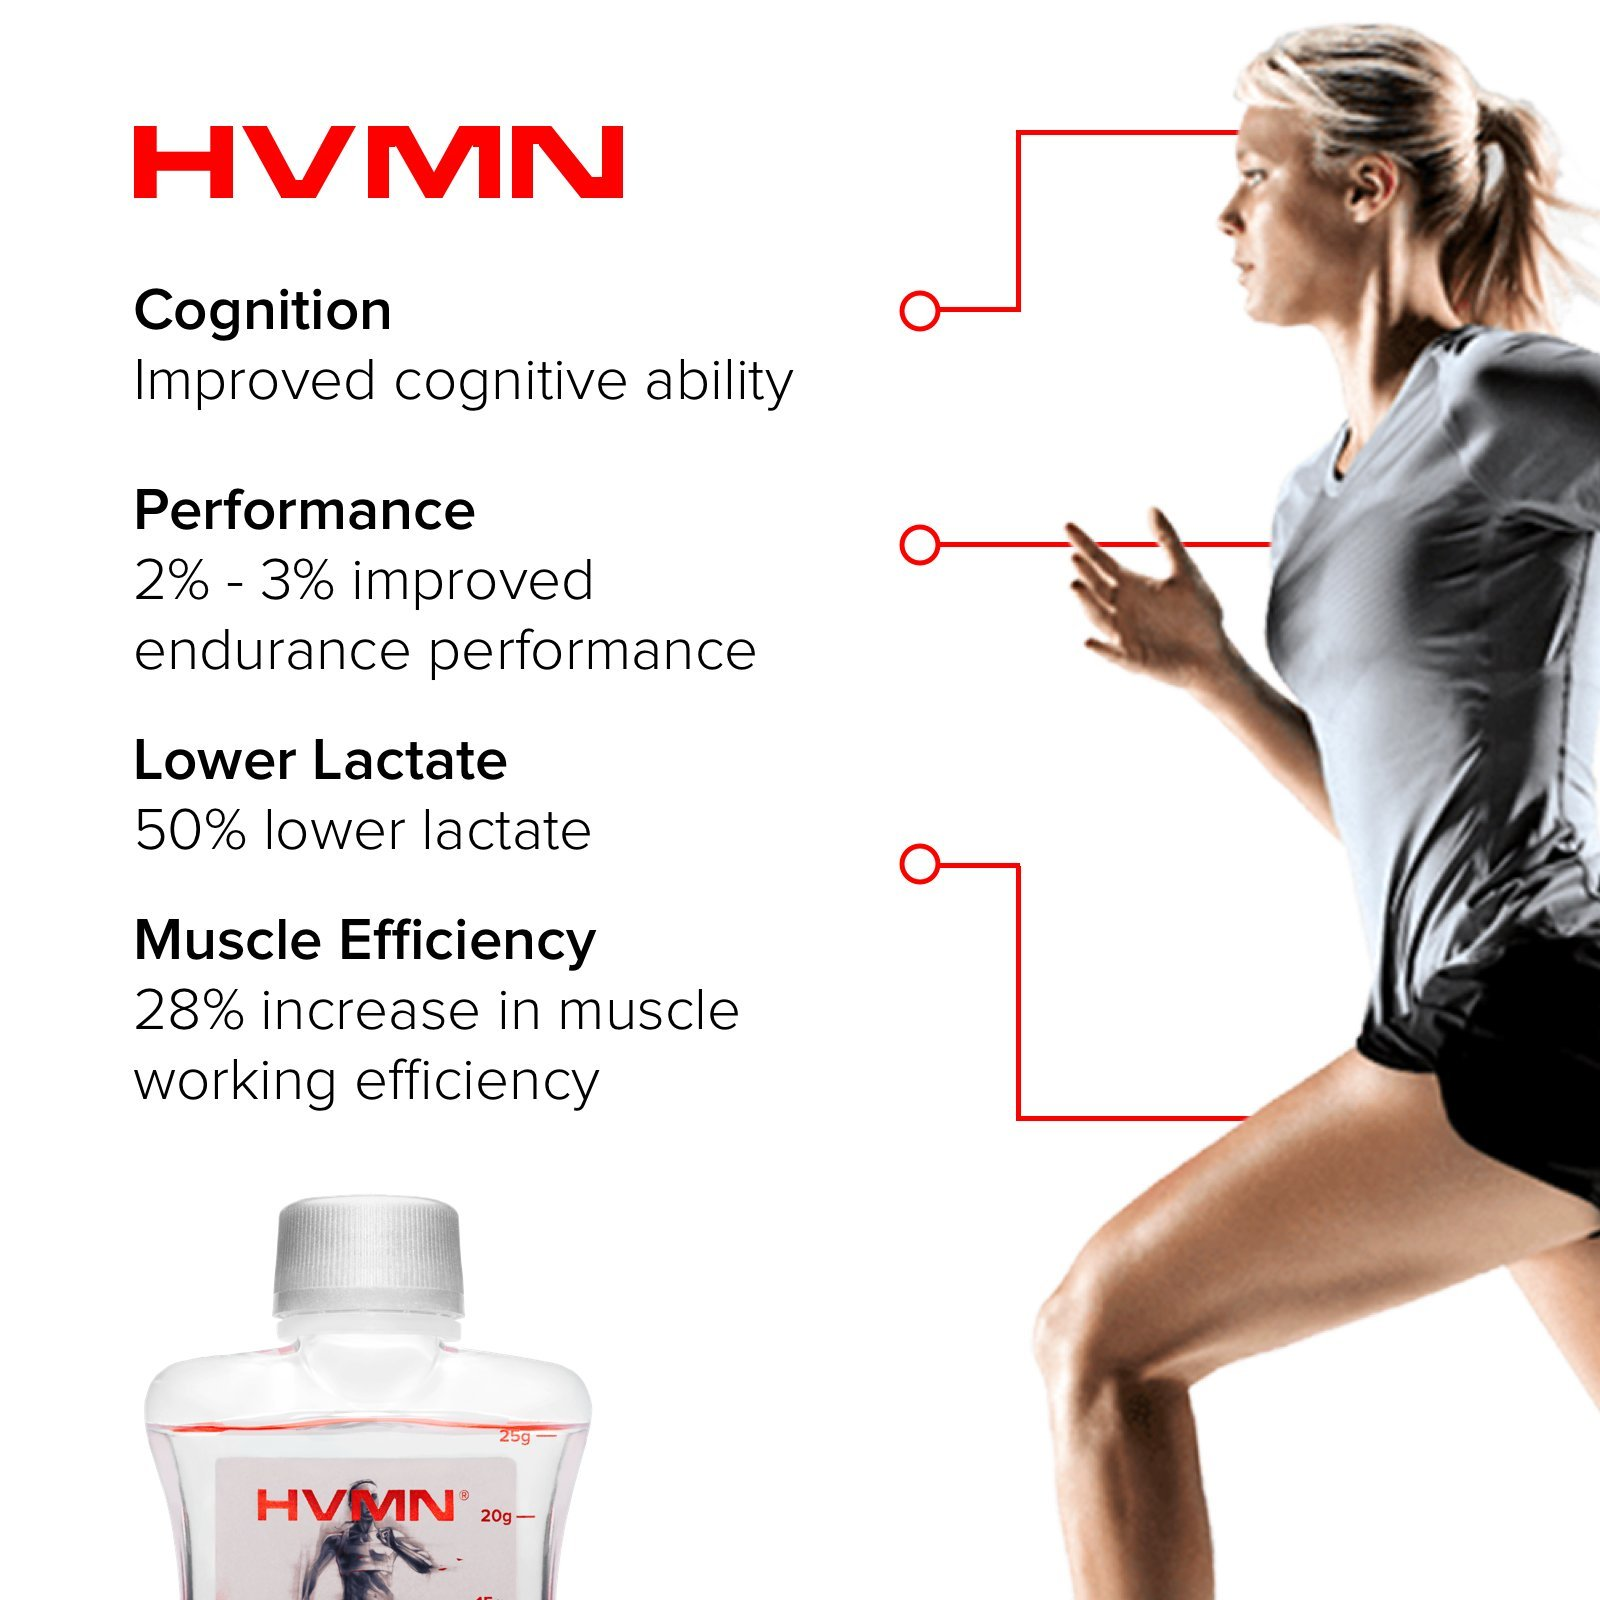 H.V.M.N. Ketone Ester - Exogenous Ketone Drink & Supplement for Endurance, Rapid Ketosis, Keto Diet, Fasting, Energy from Exogenous BHB - 3Count by HVMN (Image #3)